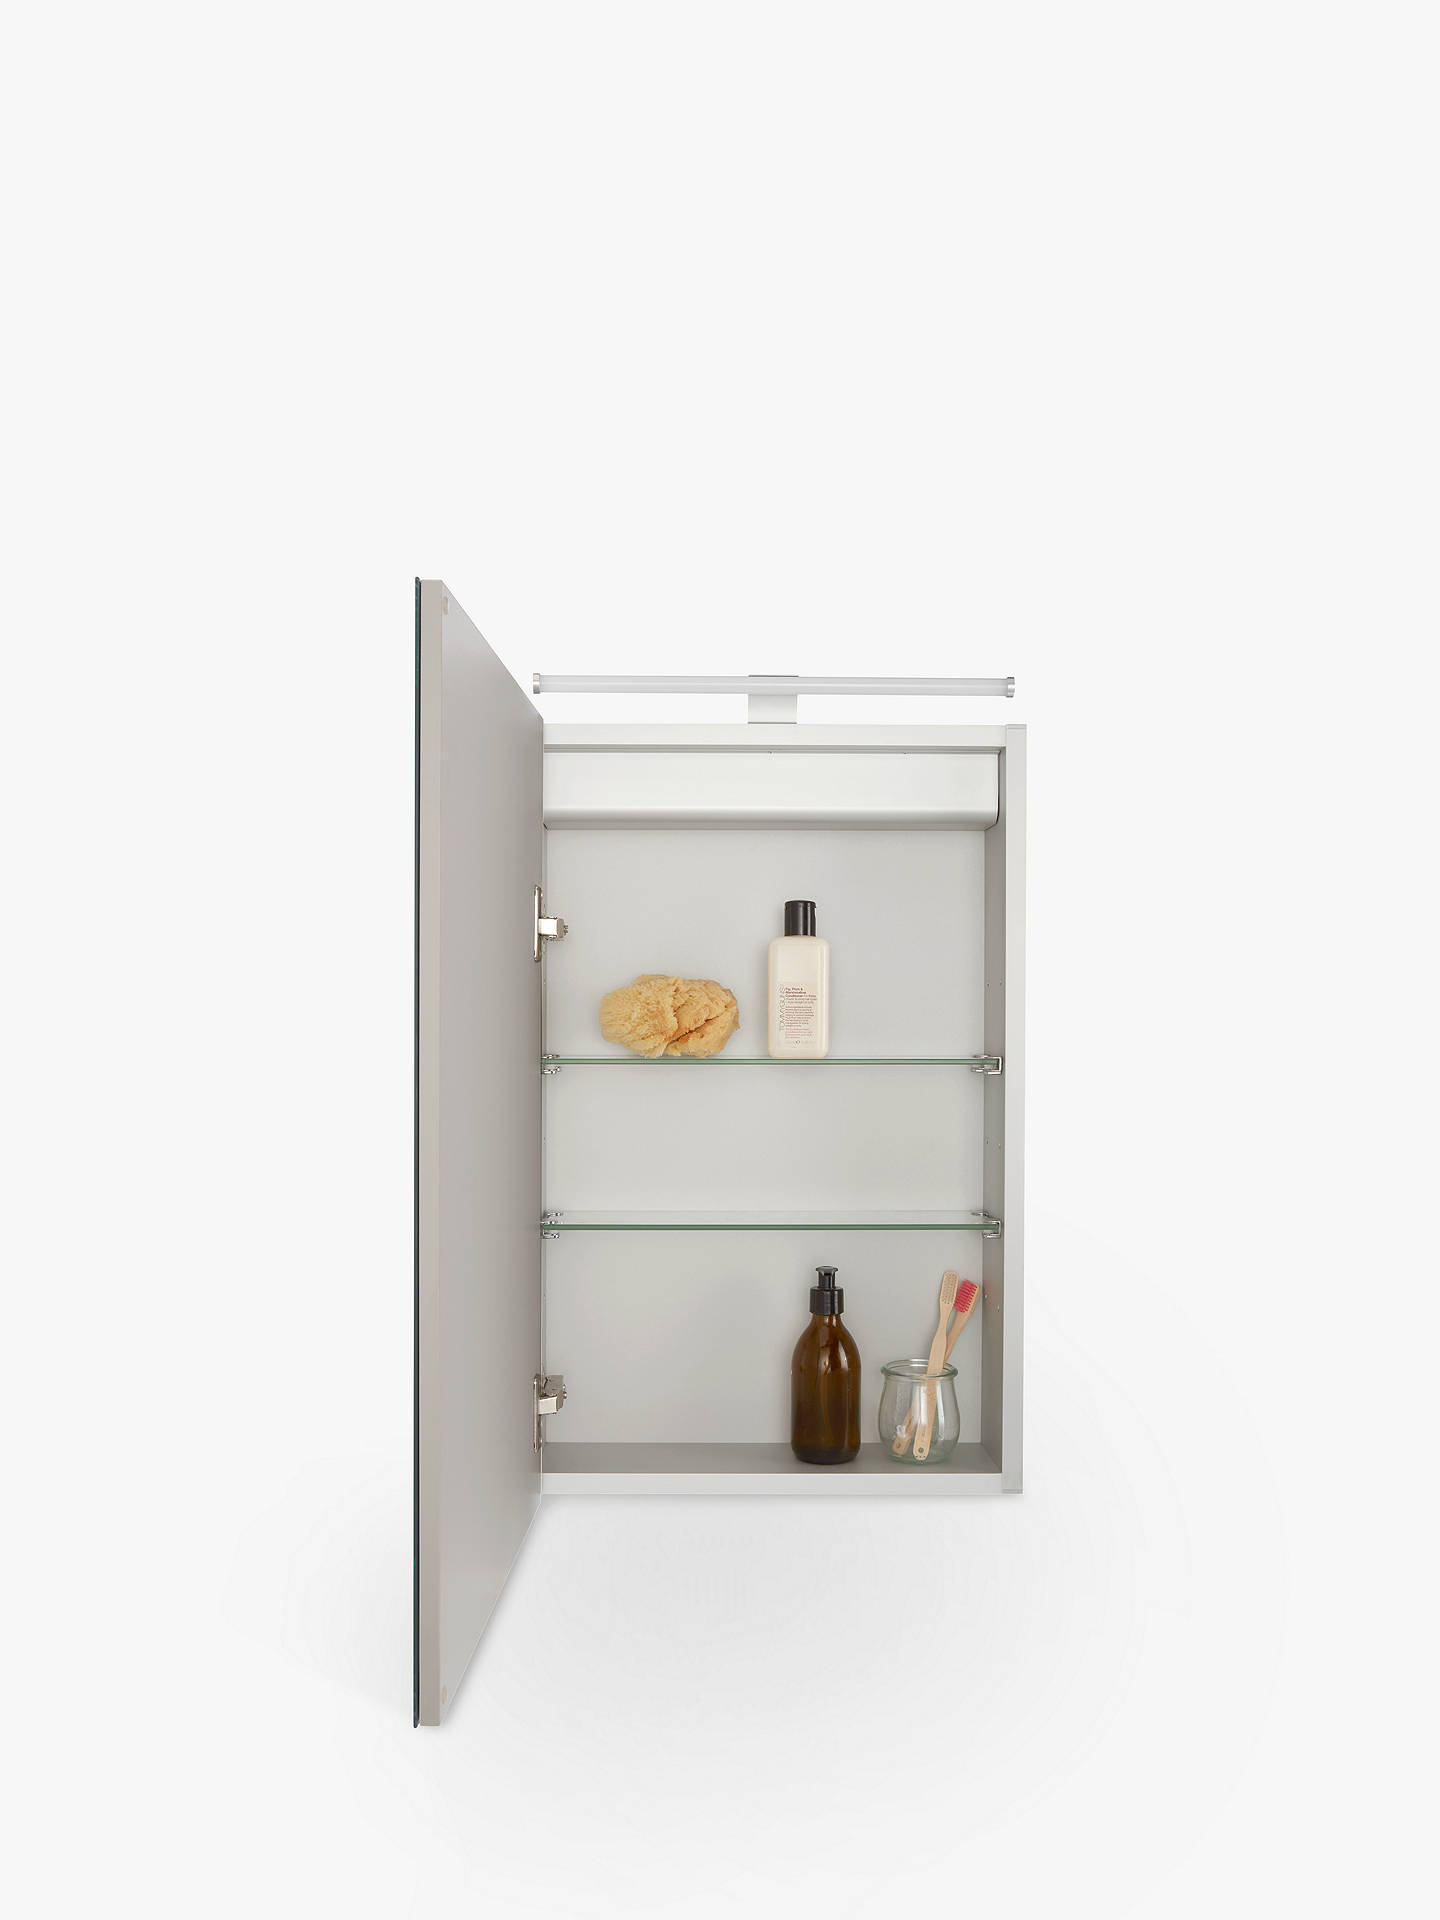 Buy John Lewis & Partners Debut Single Mirrored and Illuminated Bathroom Cabinet Online at johnlewis.com